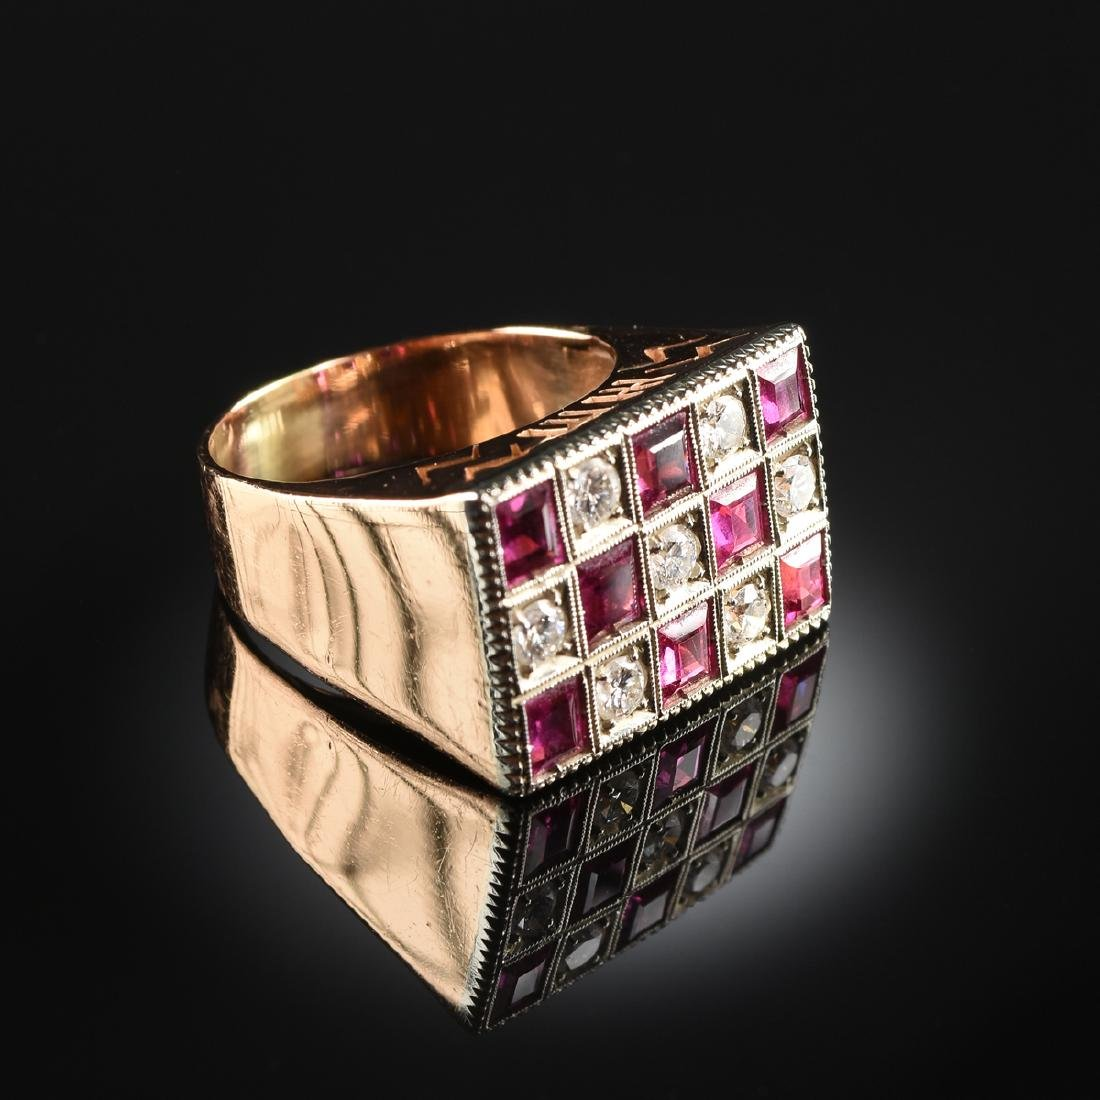 A GENTLEMAN'S 18K YELLOW GOLD, DIAMOND, AND RUBY RING,